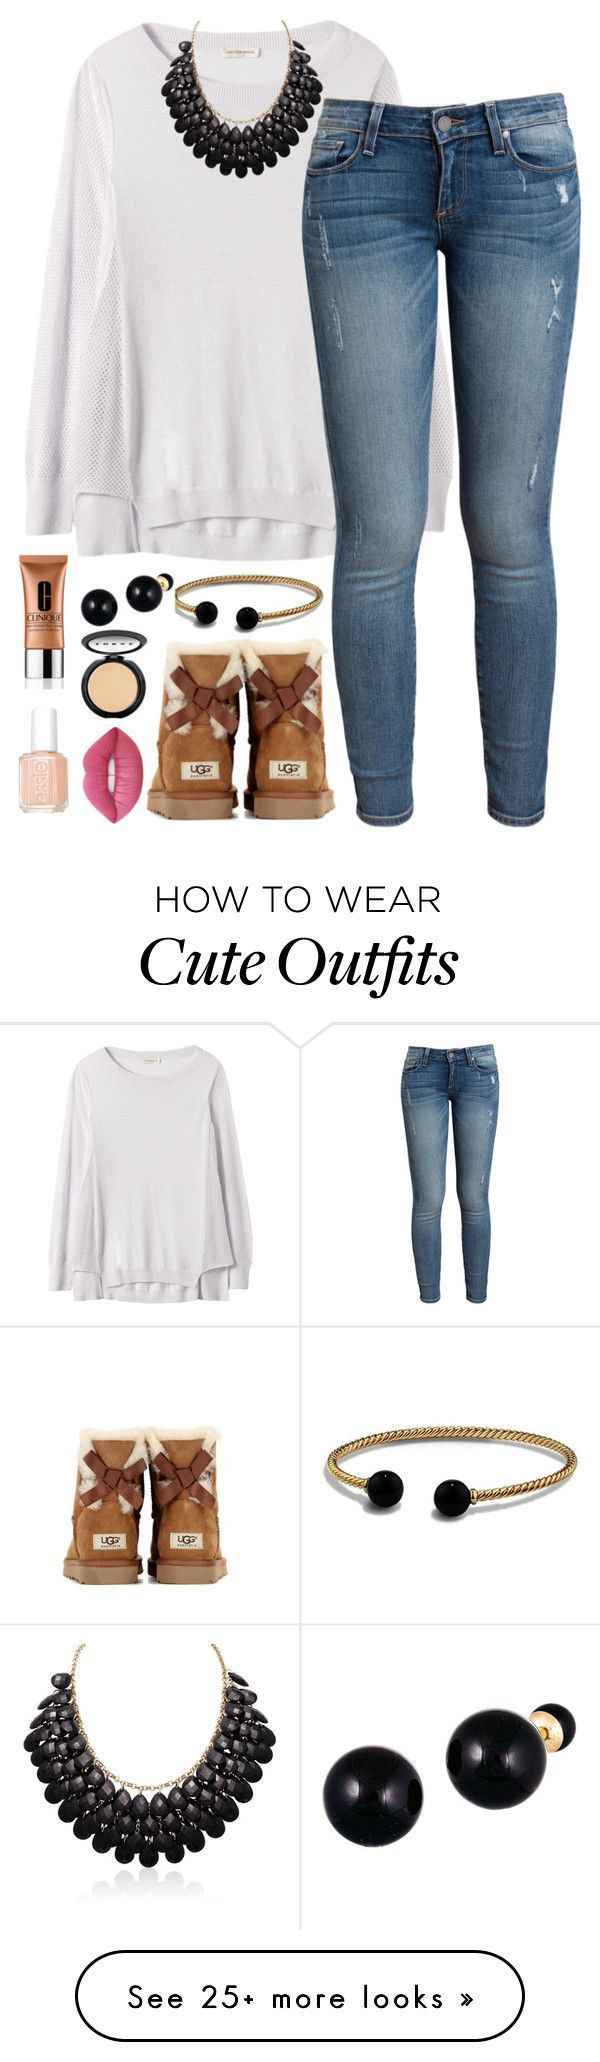 """""""I know it's spring but winter outfits are way cute!"""" by classyandsassyabby on Polyvore featuring Rebecca Taylor, Paige Denim, David Yurman, Lord & Taylor, UGG Australia, Clinique, LORAC, Essie and Lime Crime"""